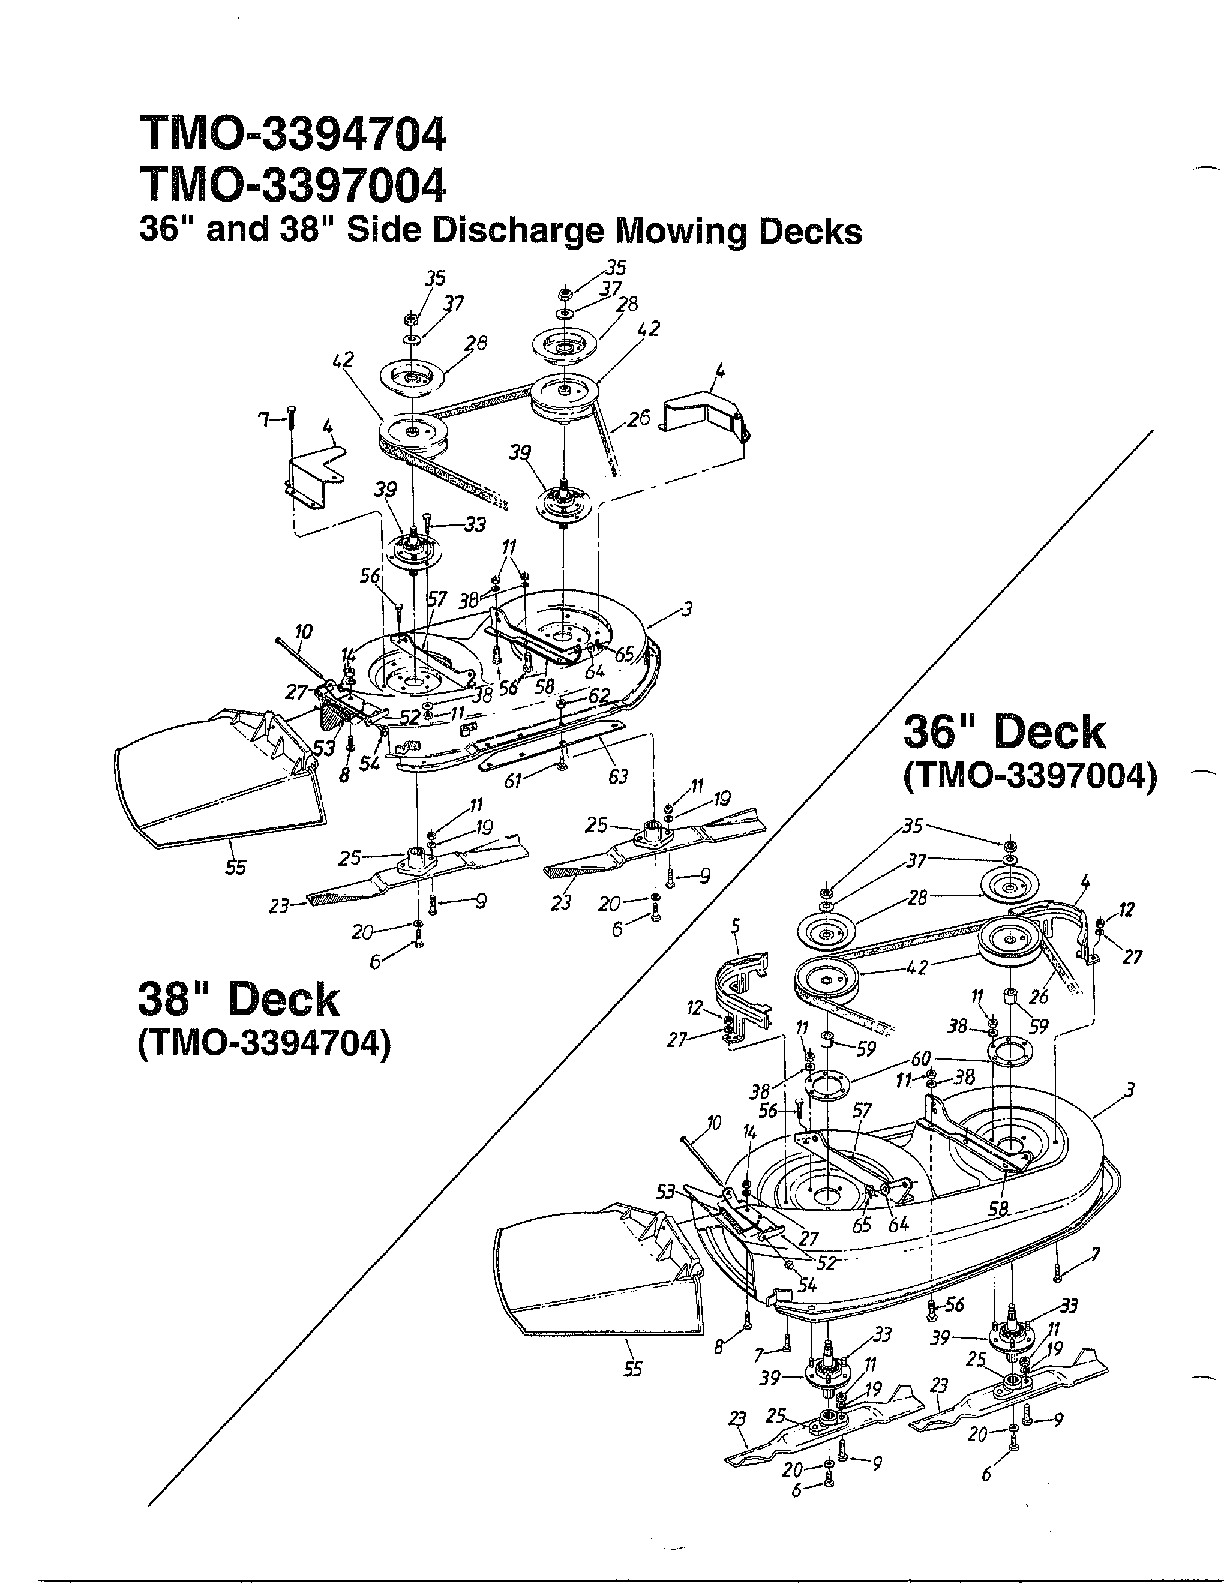 Mtd 38 Mower Deck Belt Diagram / Battlefield 2 cracked patch